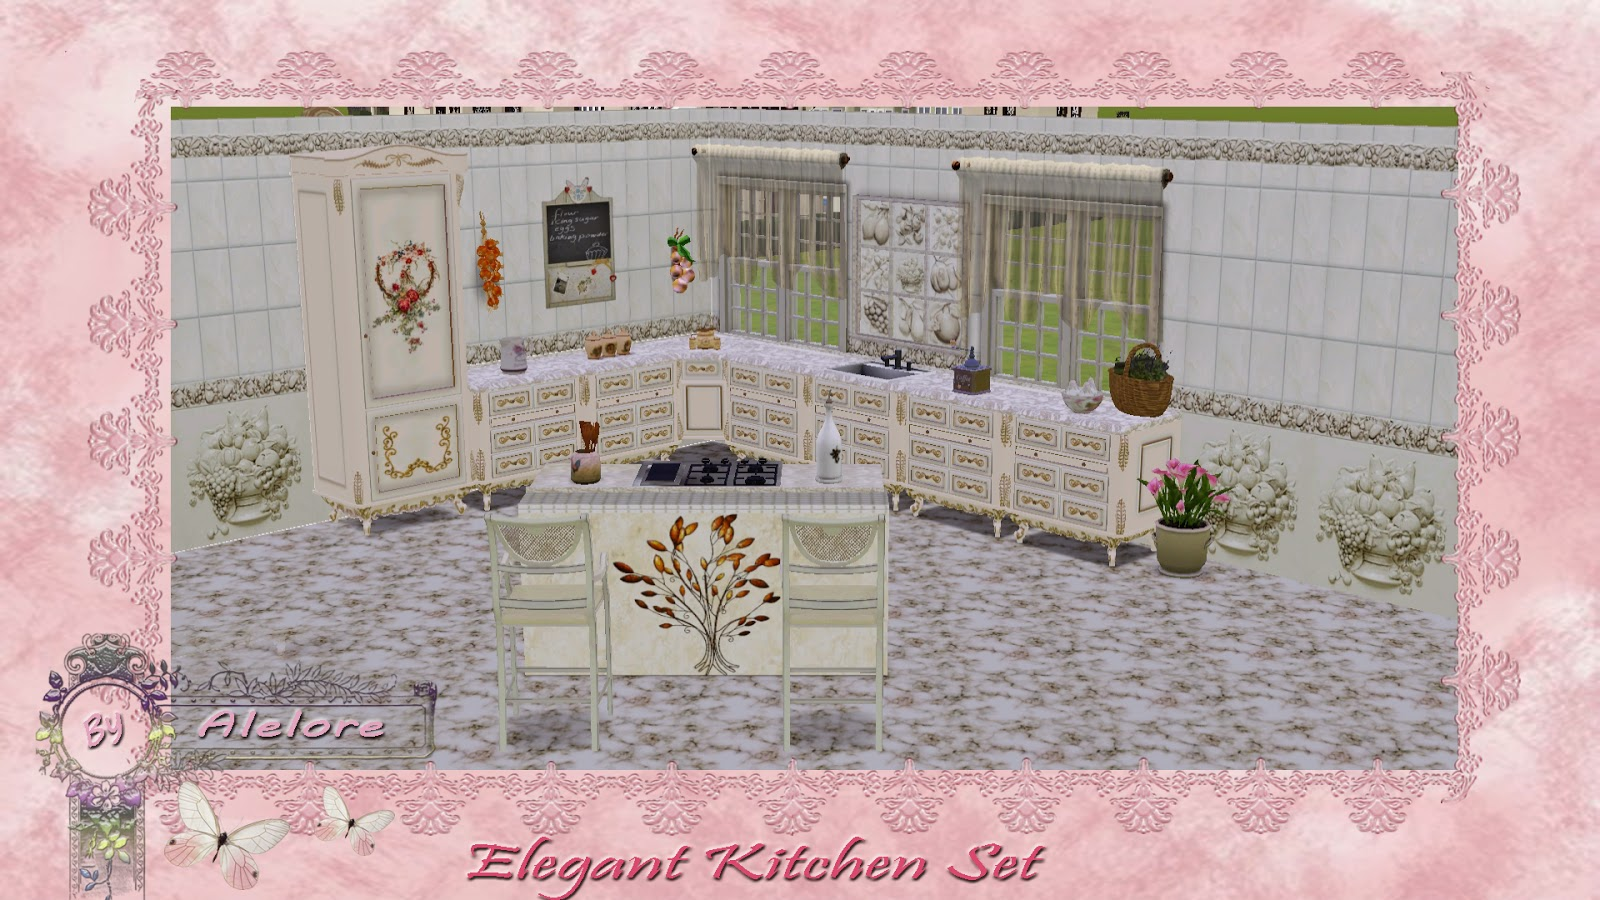 Elegant Kitchen Wall Set by Alelore